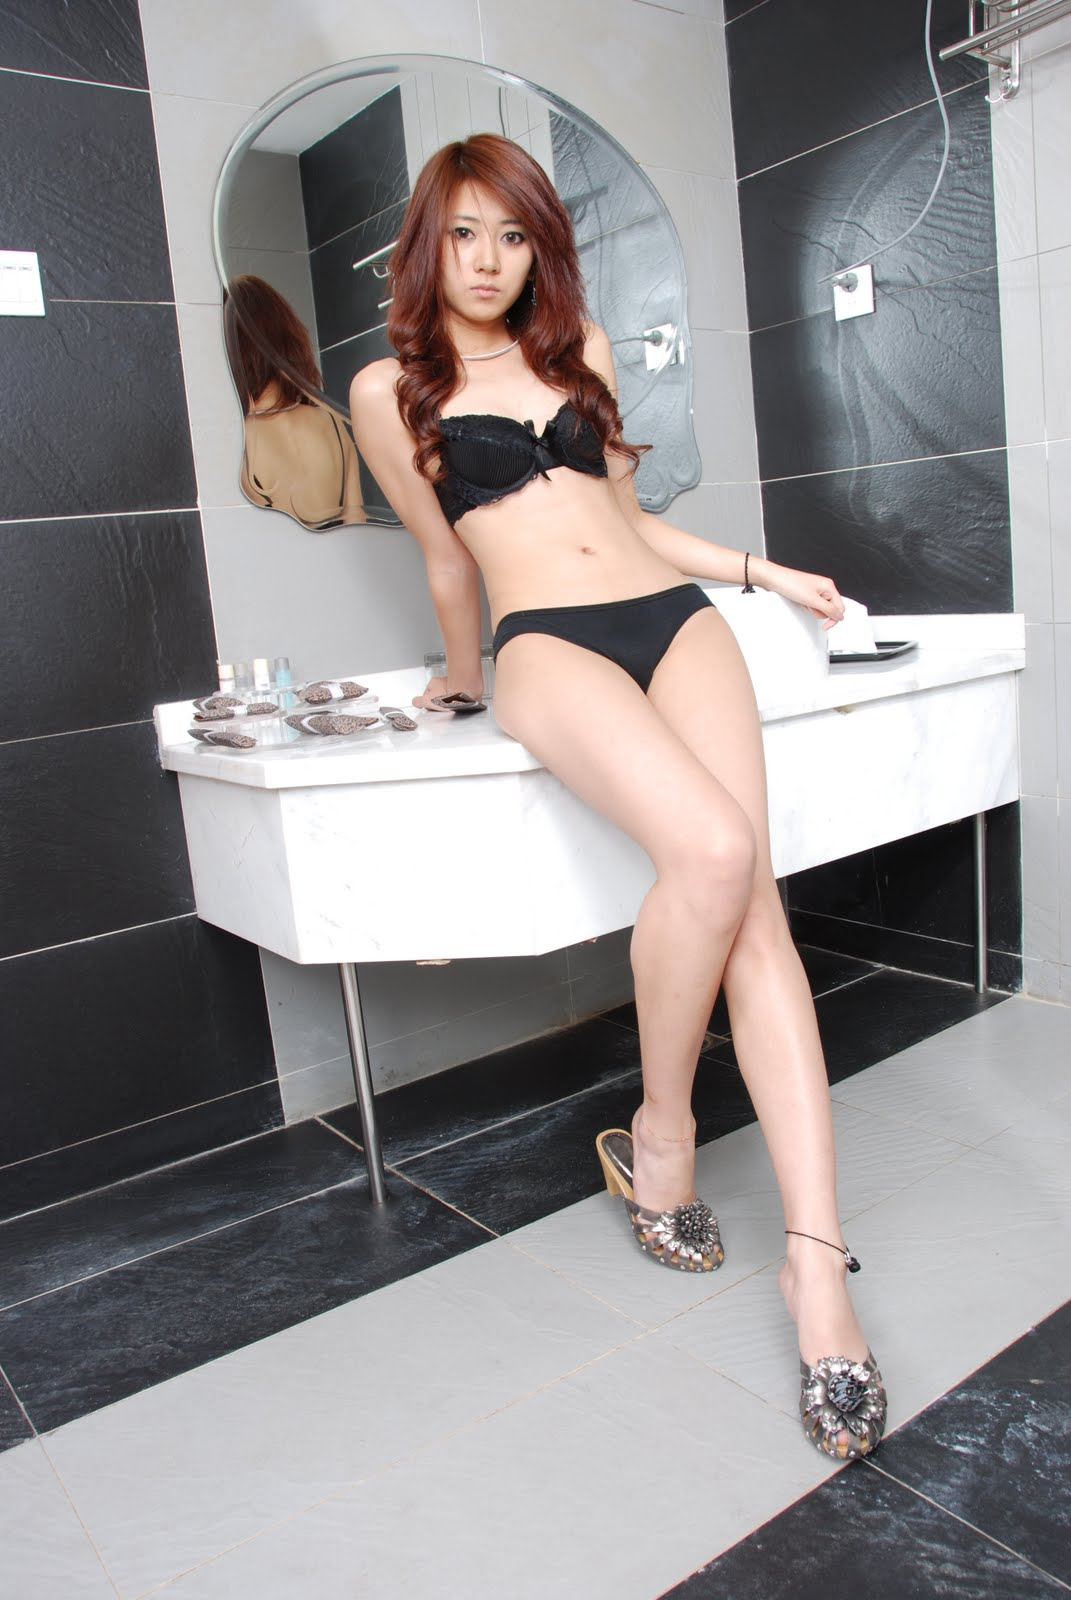 yan feng jiao sexy bathroom bikini photos 07